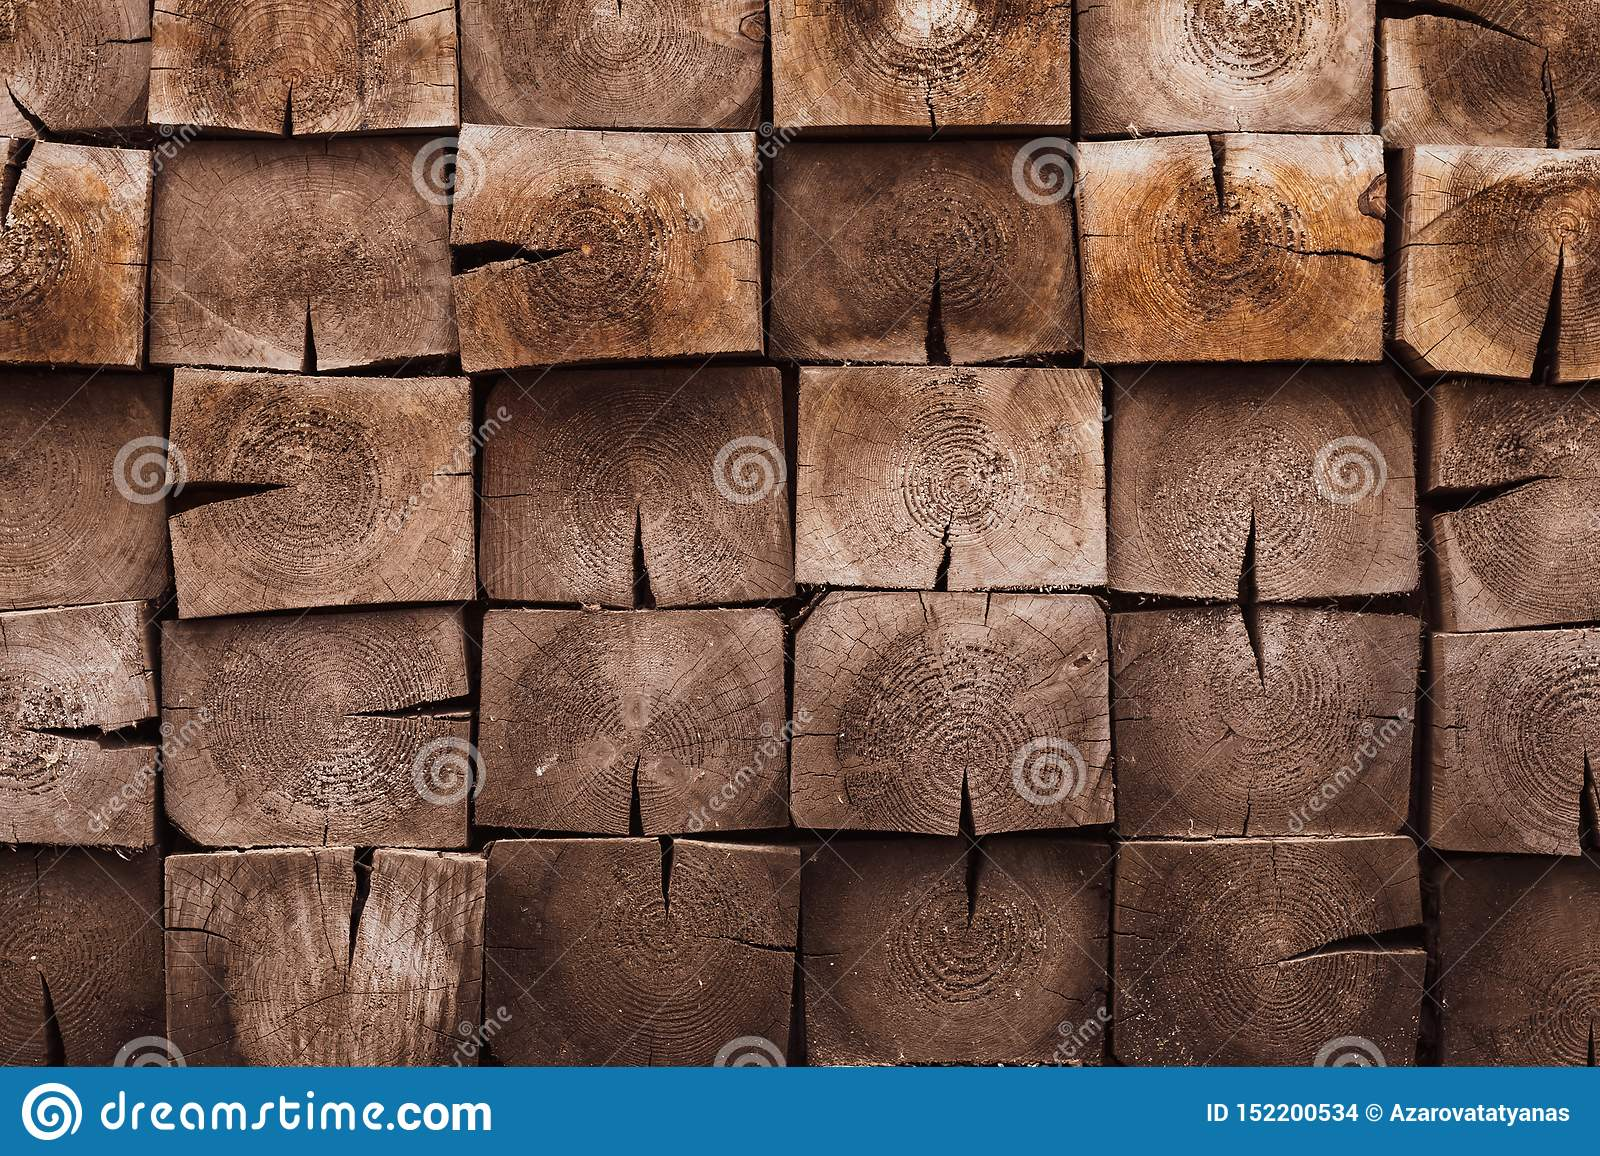 Mosaic of square bars, wooden planks. Brown slat, planch, bred wall. Vintage rustic close-up wood texture. Modern geometric patter